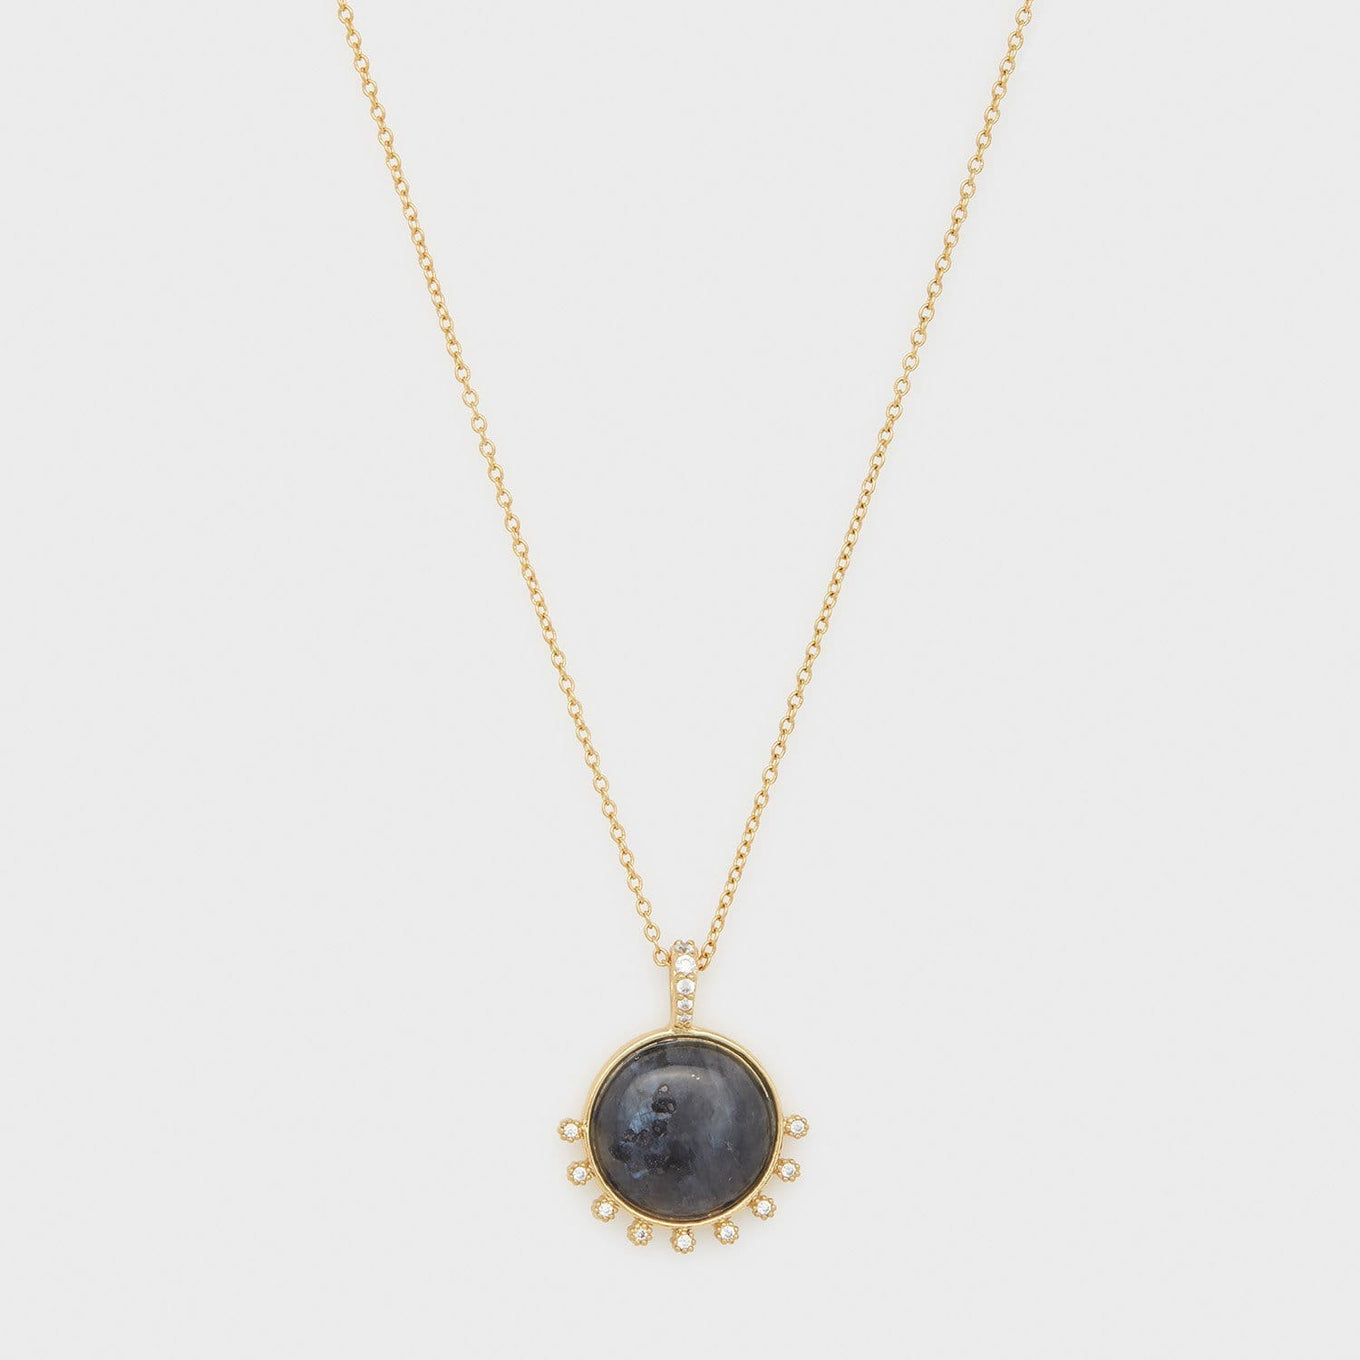 Eloise Gem Necklace Black Labradorite